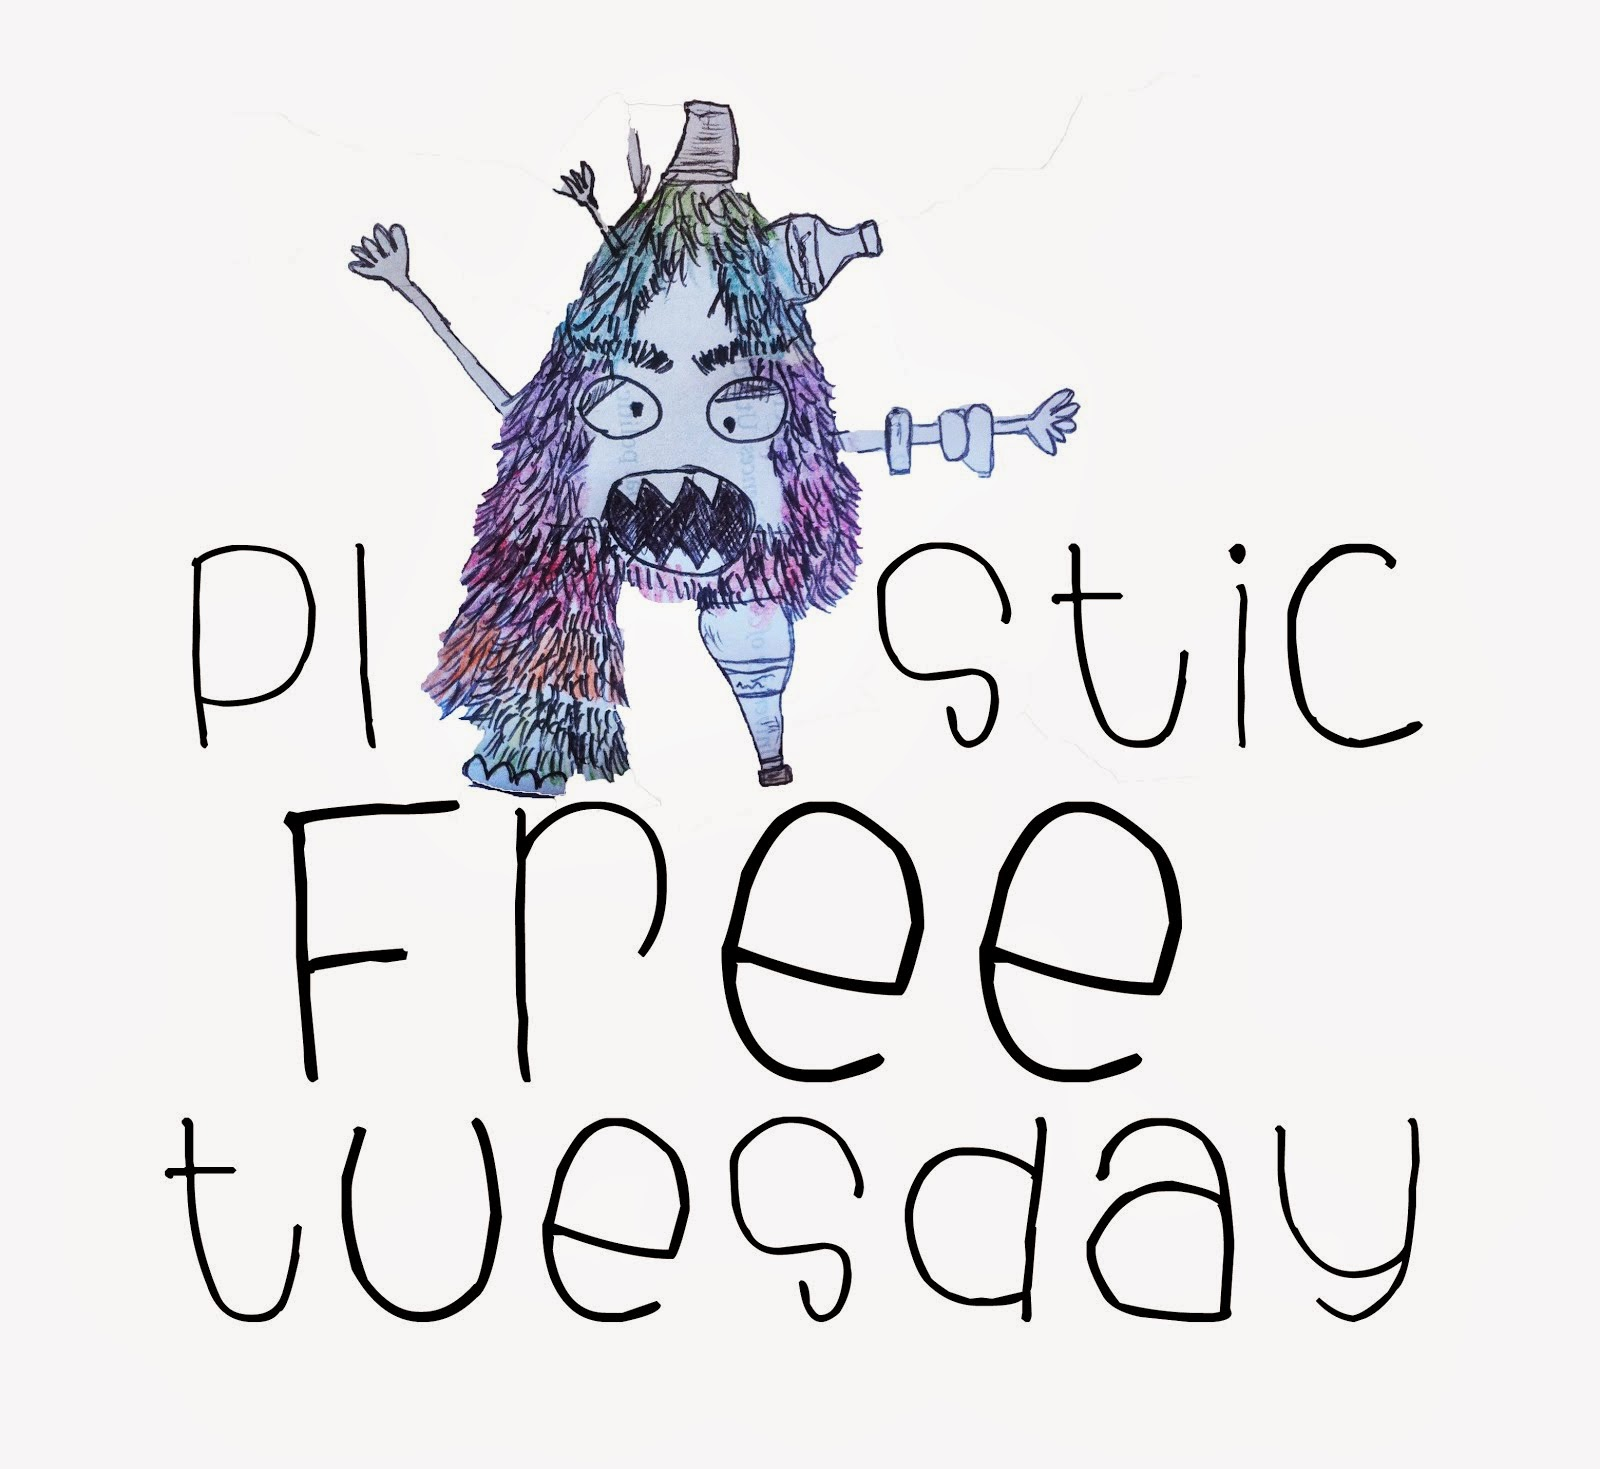 Doe mee aan Plastic-Free Tuesday!